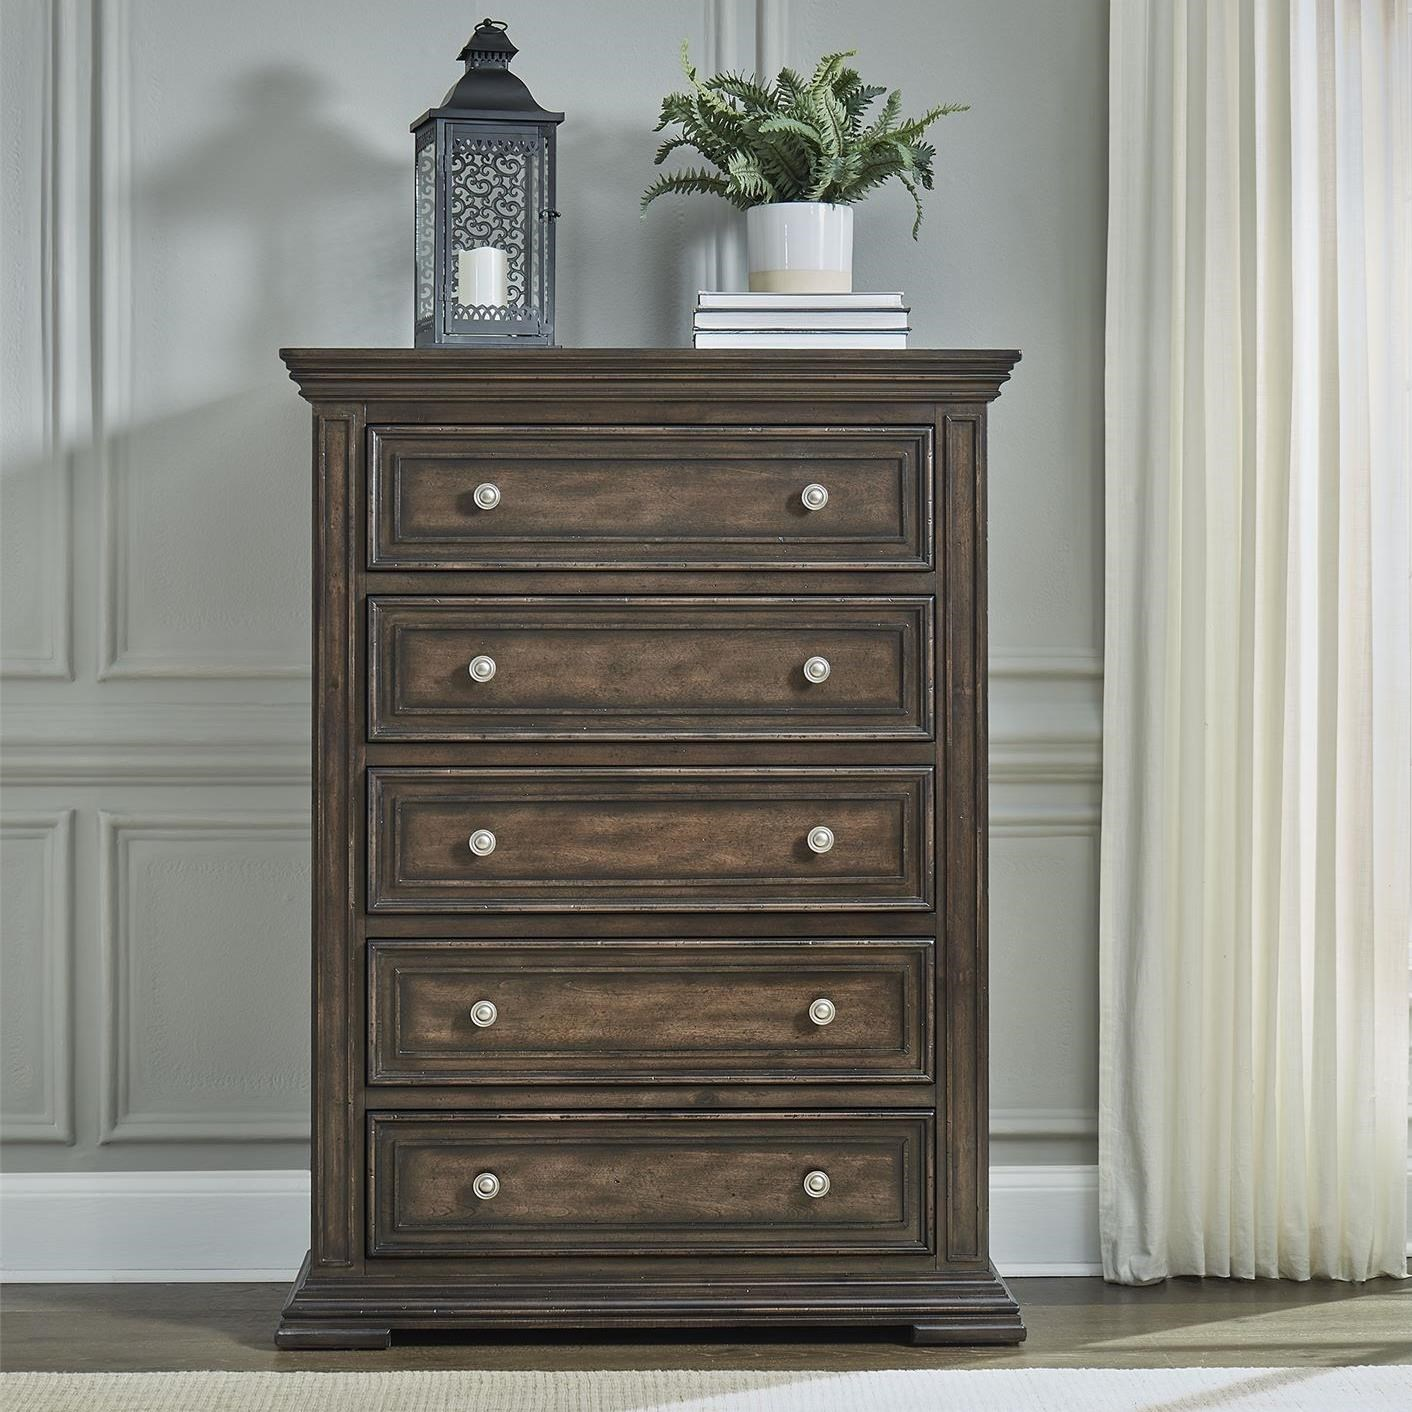 Big Valley 5-Drawer Chest by Liberty Furniture at Zak's Home